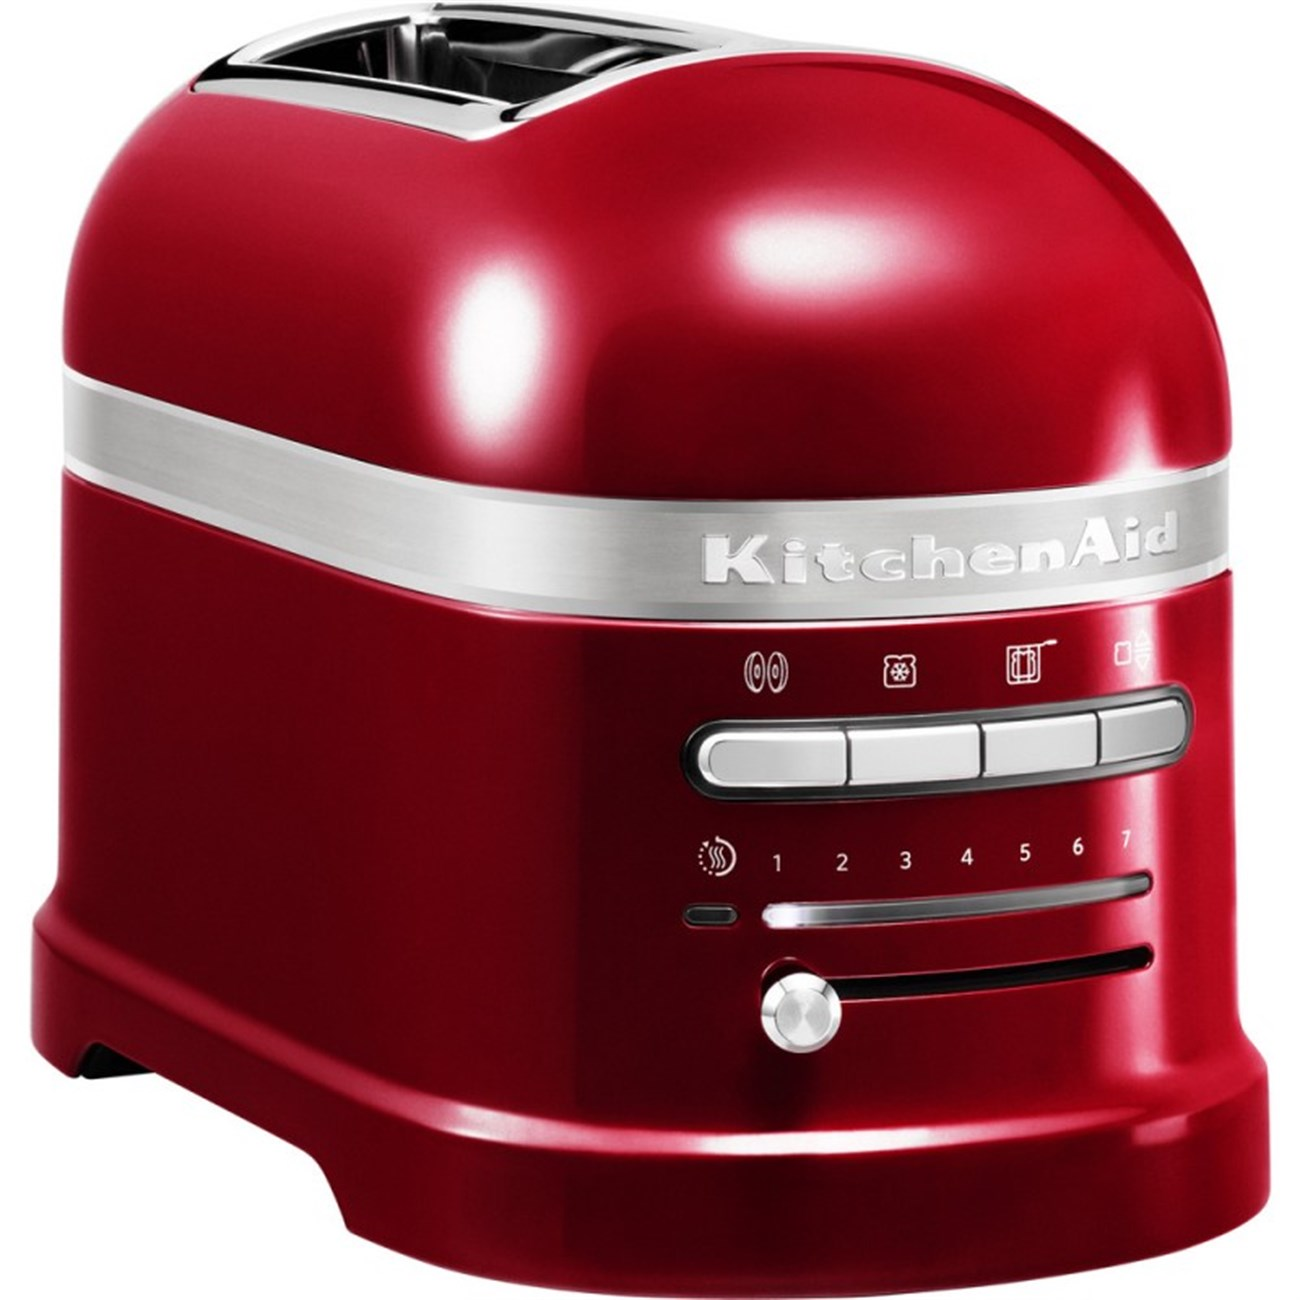 Kitchenaid Artisan 2 Dilim Ekmek Kızartma Makinesi - 5KMT2204 Candy Apple